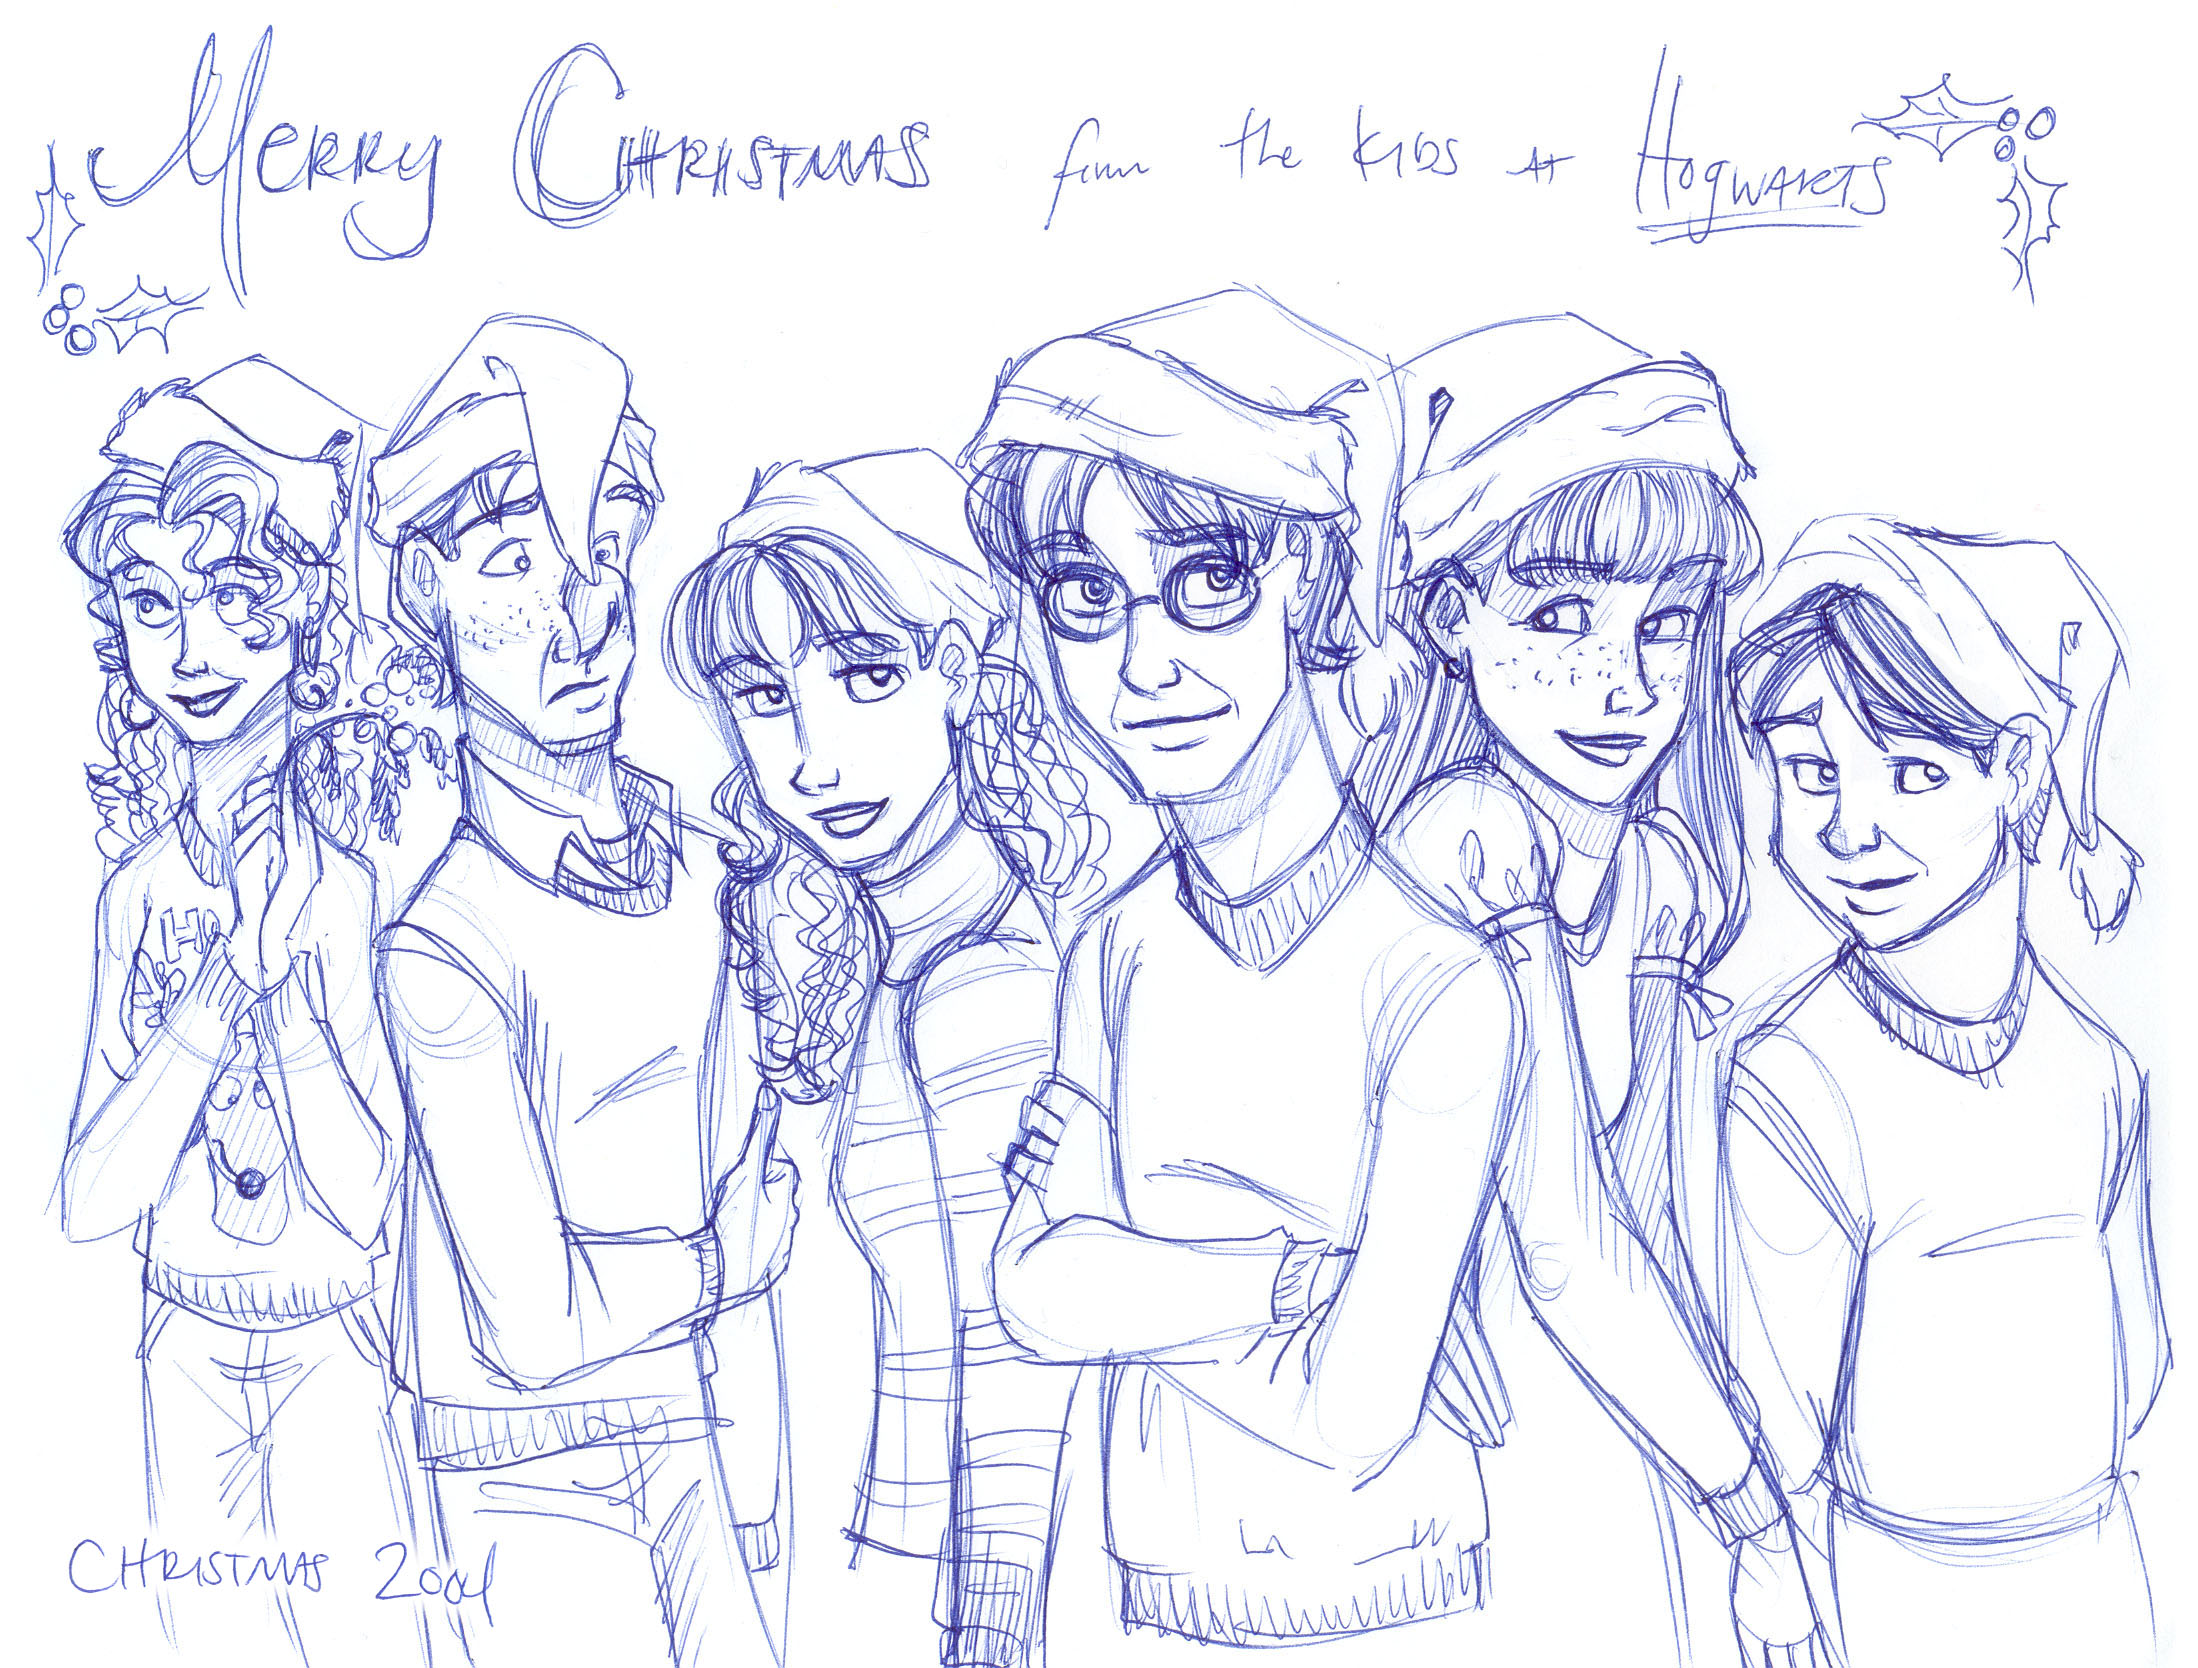 A Christmas greeting from the kids at Hogwarts